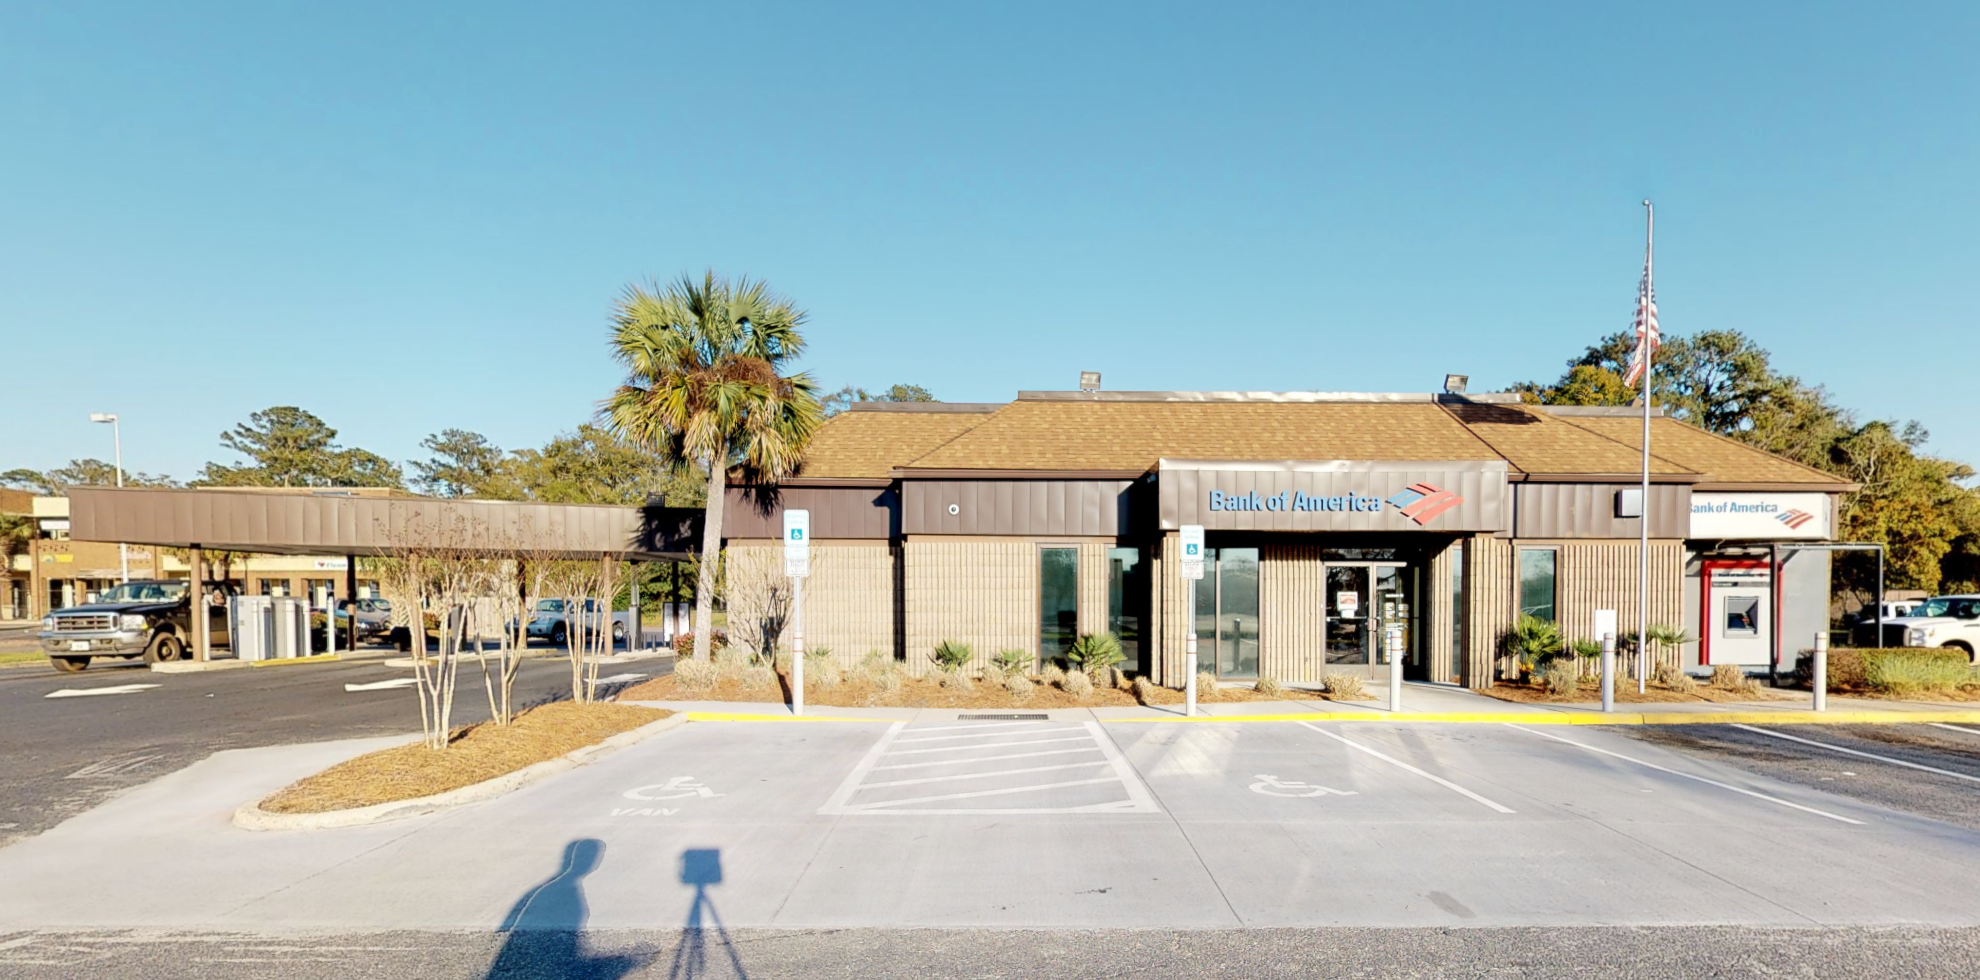 Bank of America financial center with drive-thru ATM | 2115 Boundary St, Beaufort, SC 29902